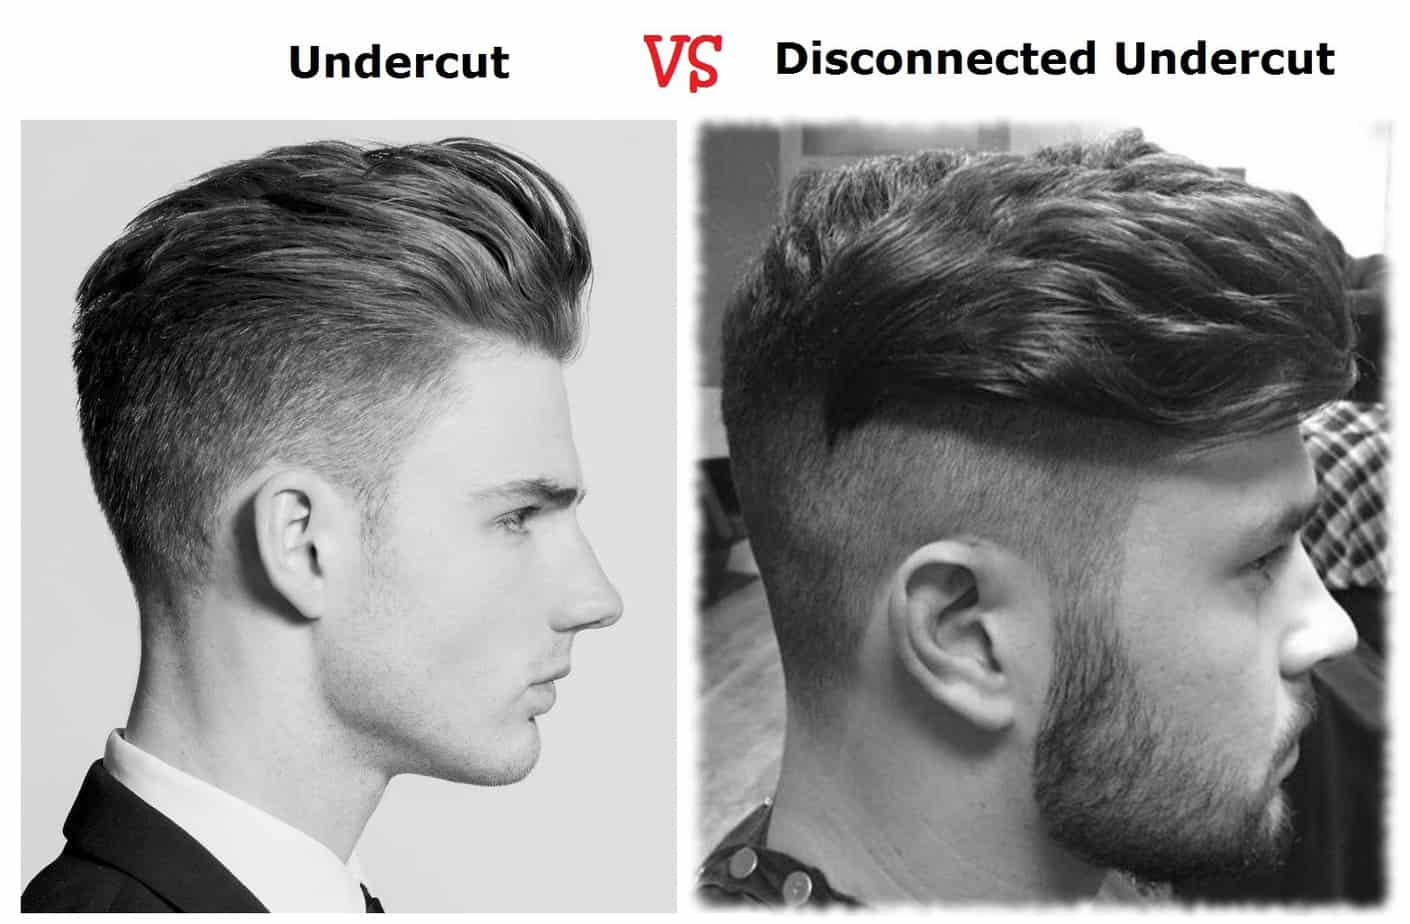 undercut vs disconnected undercut difference